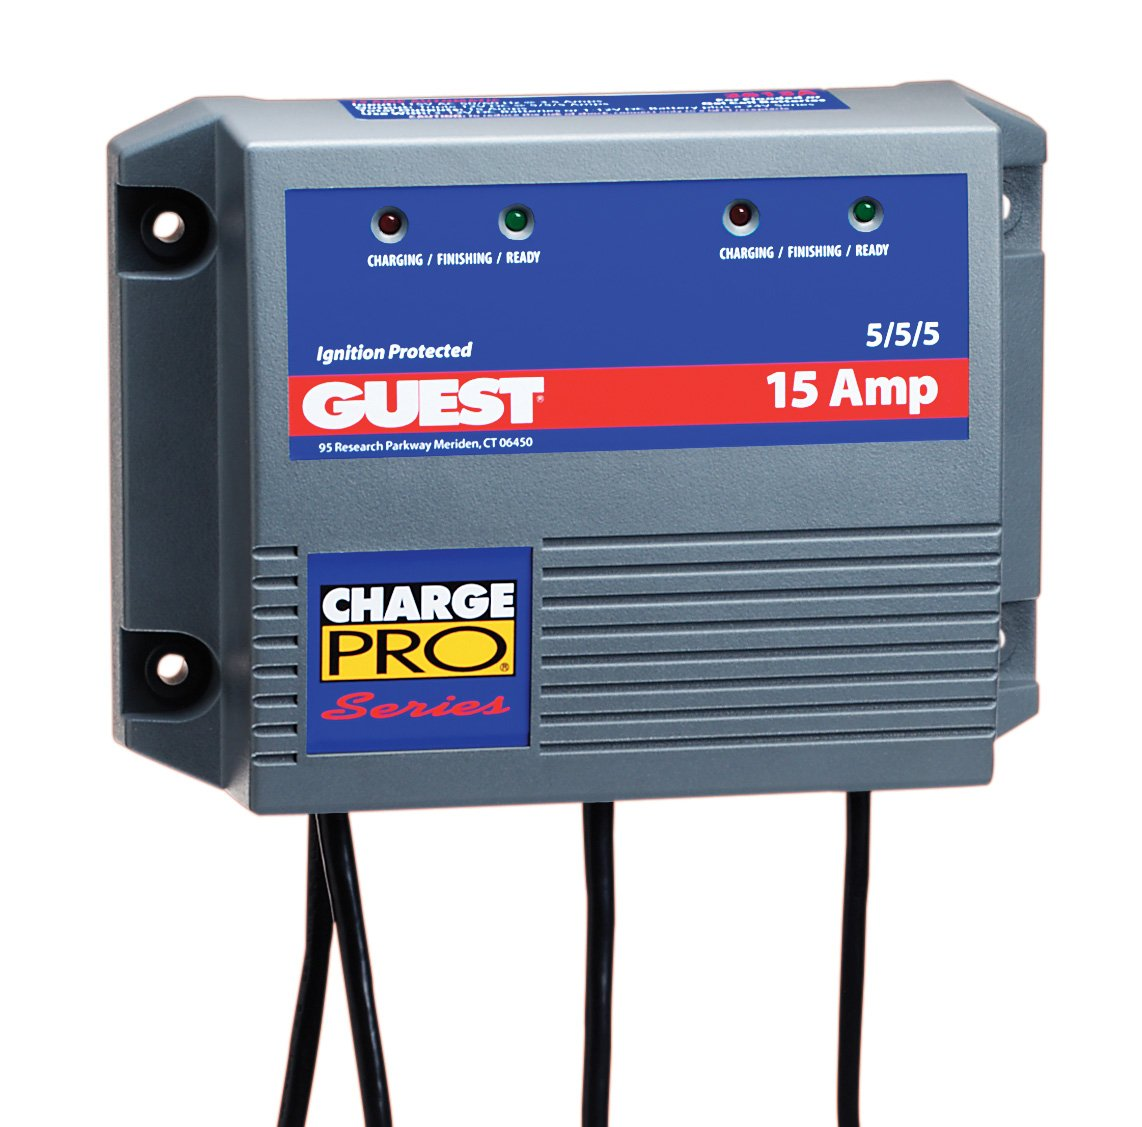 hight resolution of 15 amp triple output charge pro battery charger 15a 5 5 5 12 24 guest battery charger wiring diagram